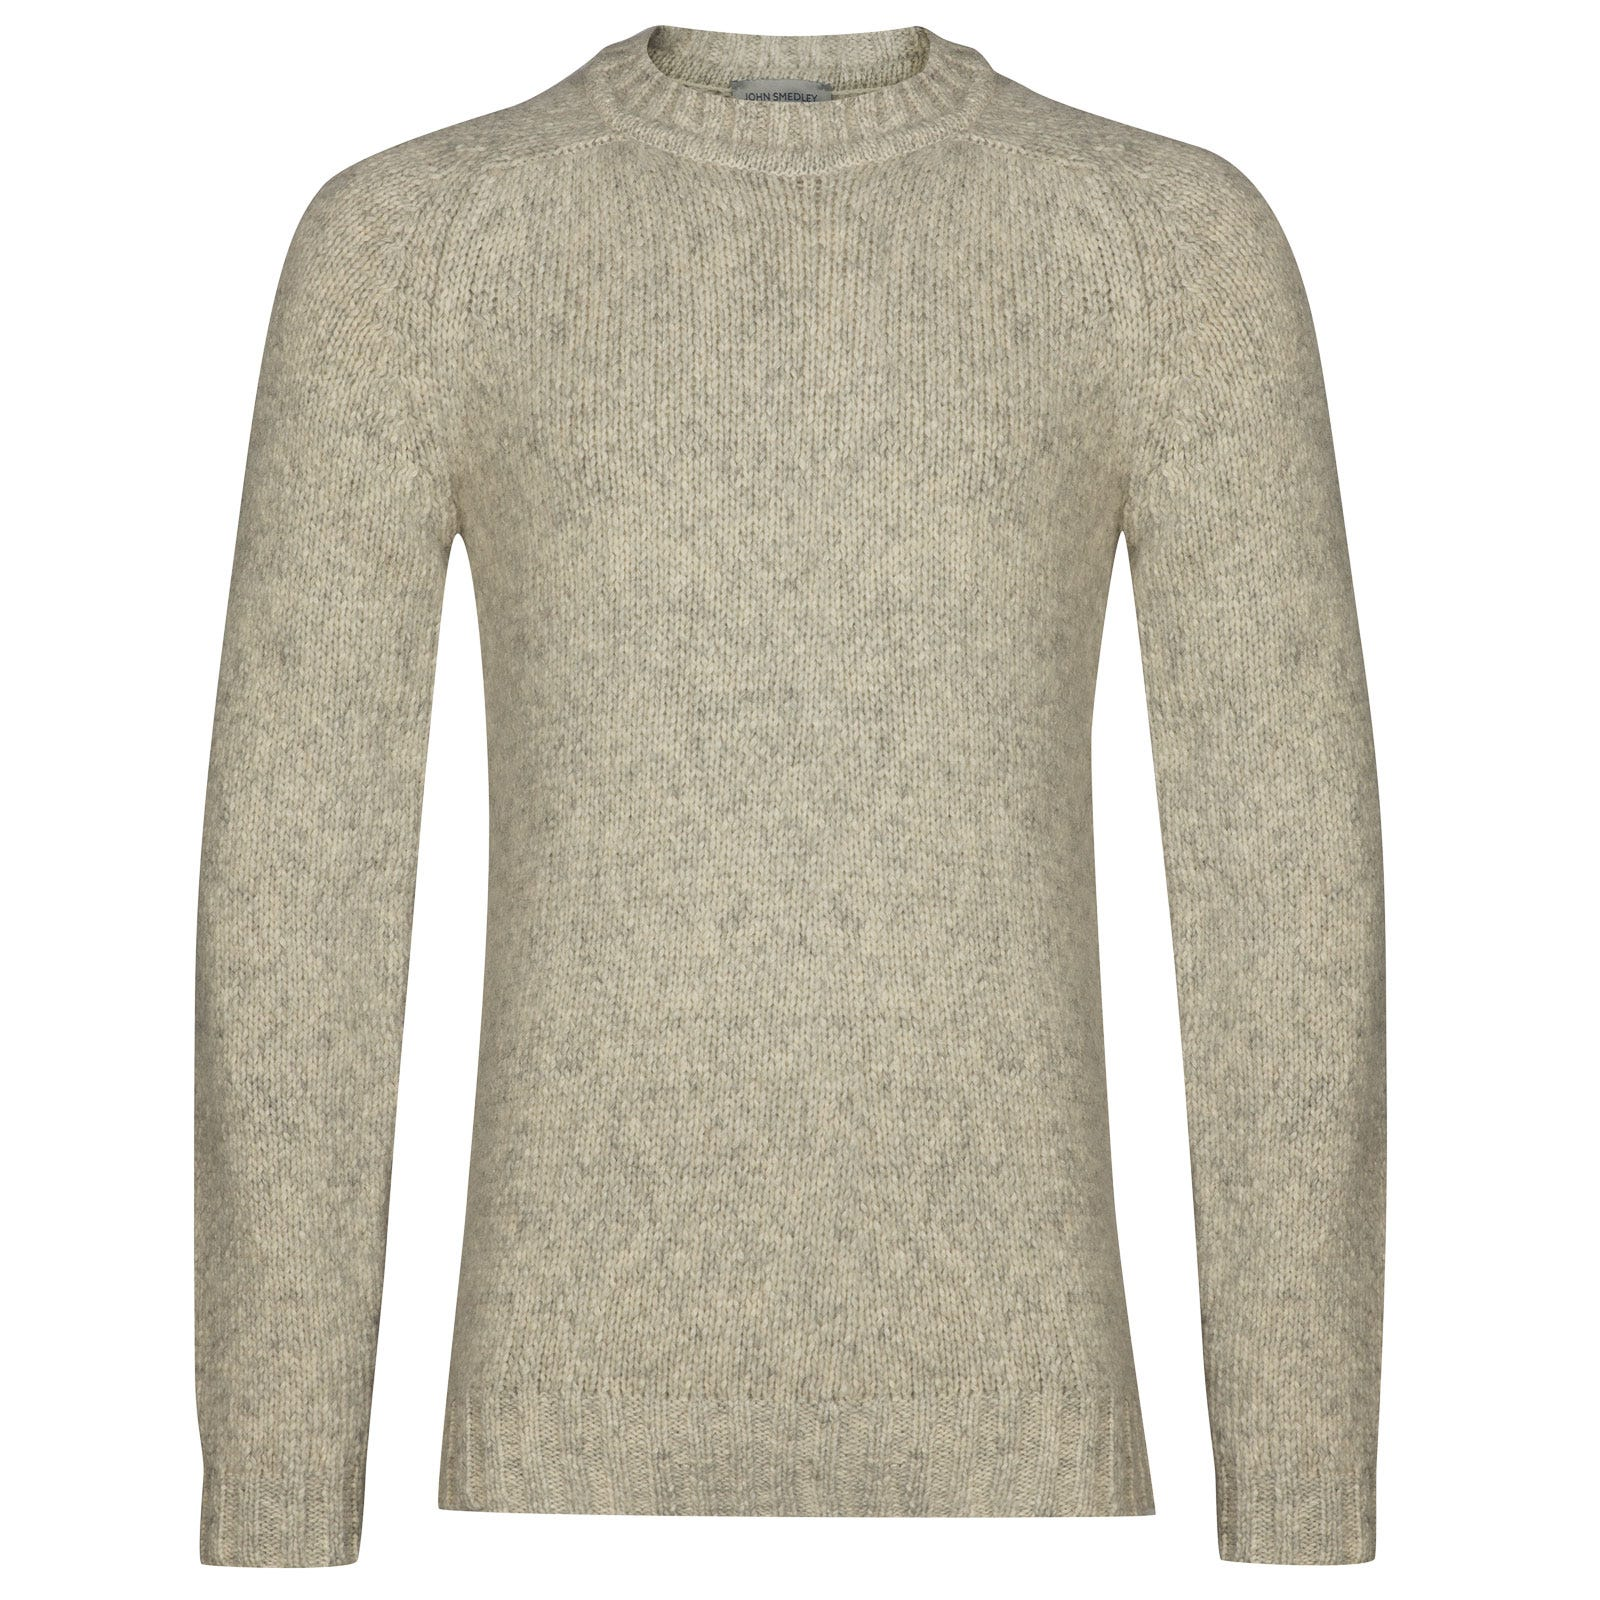 John Smedley storr Alpaca, Wool & Cotton Pullover in Silver-M